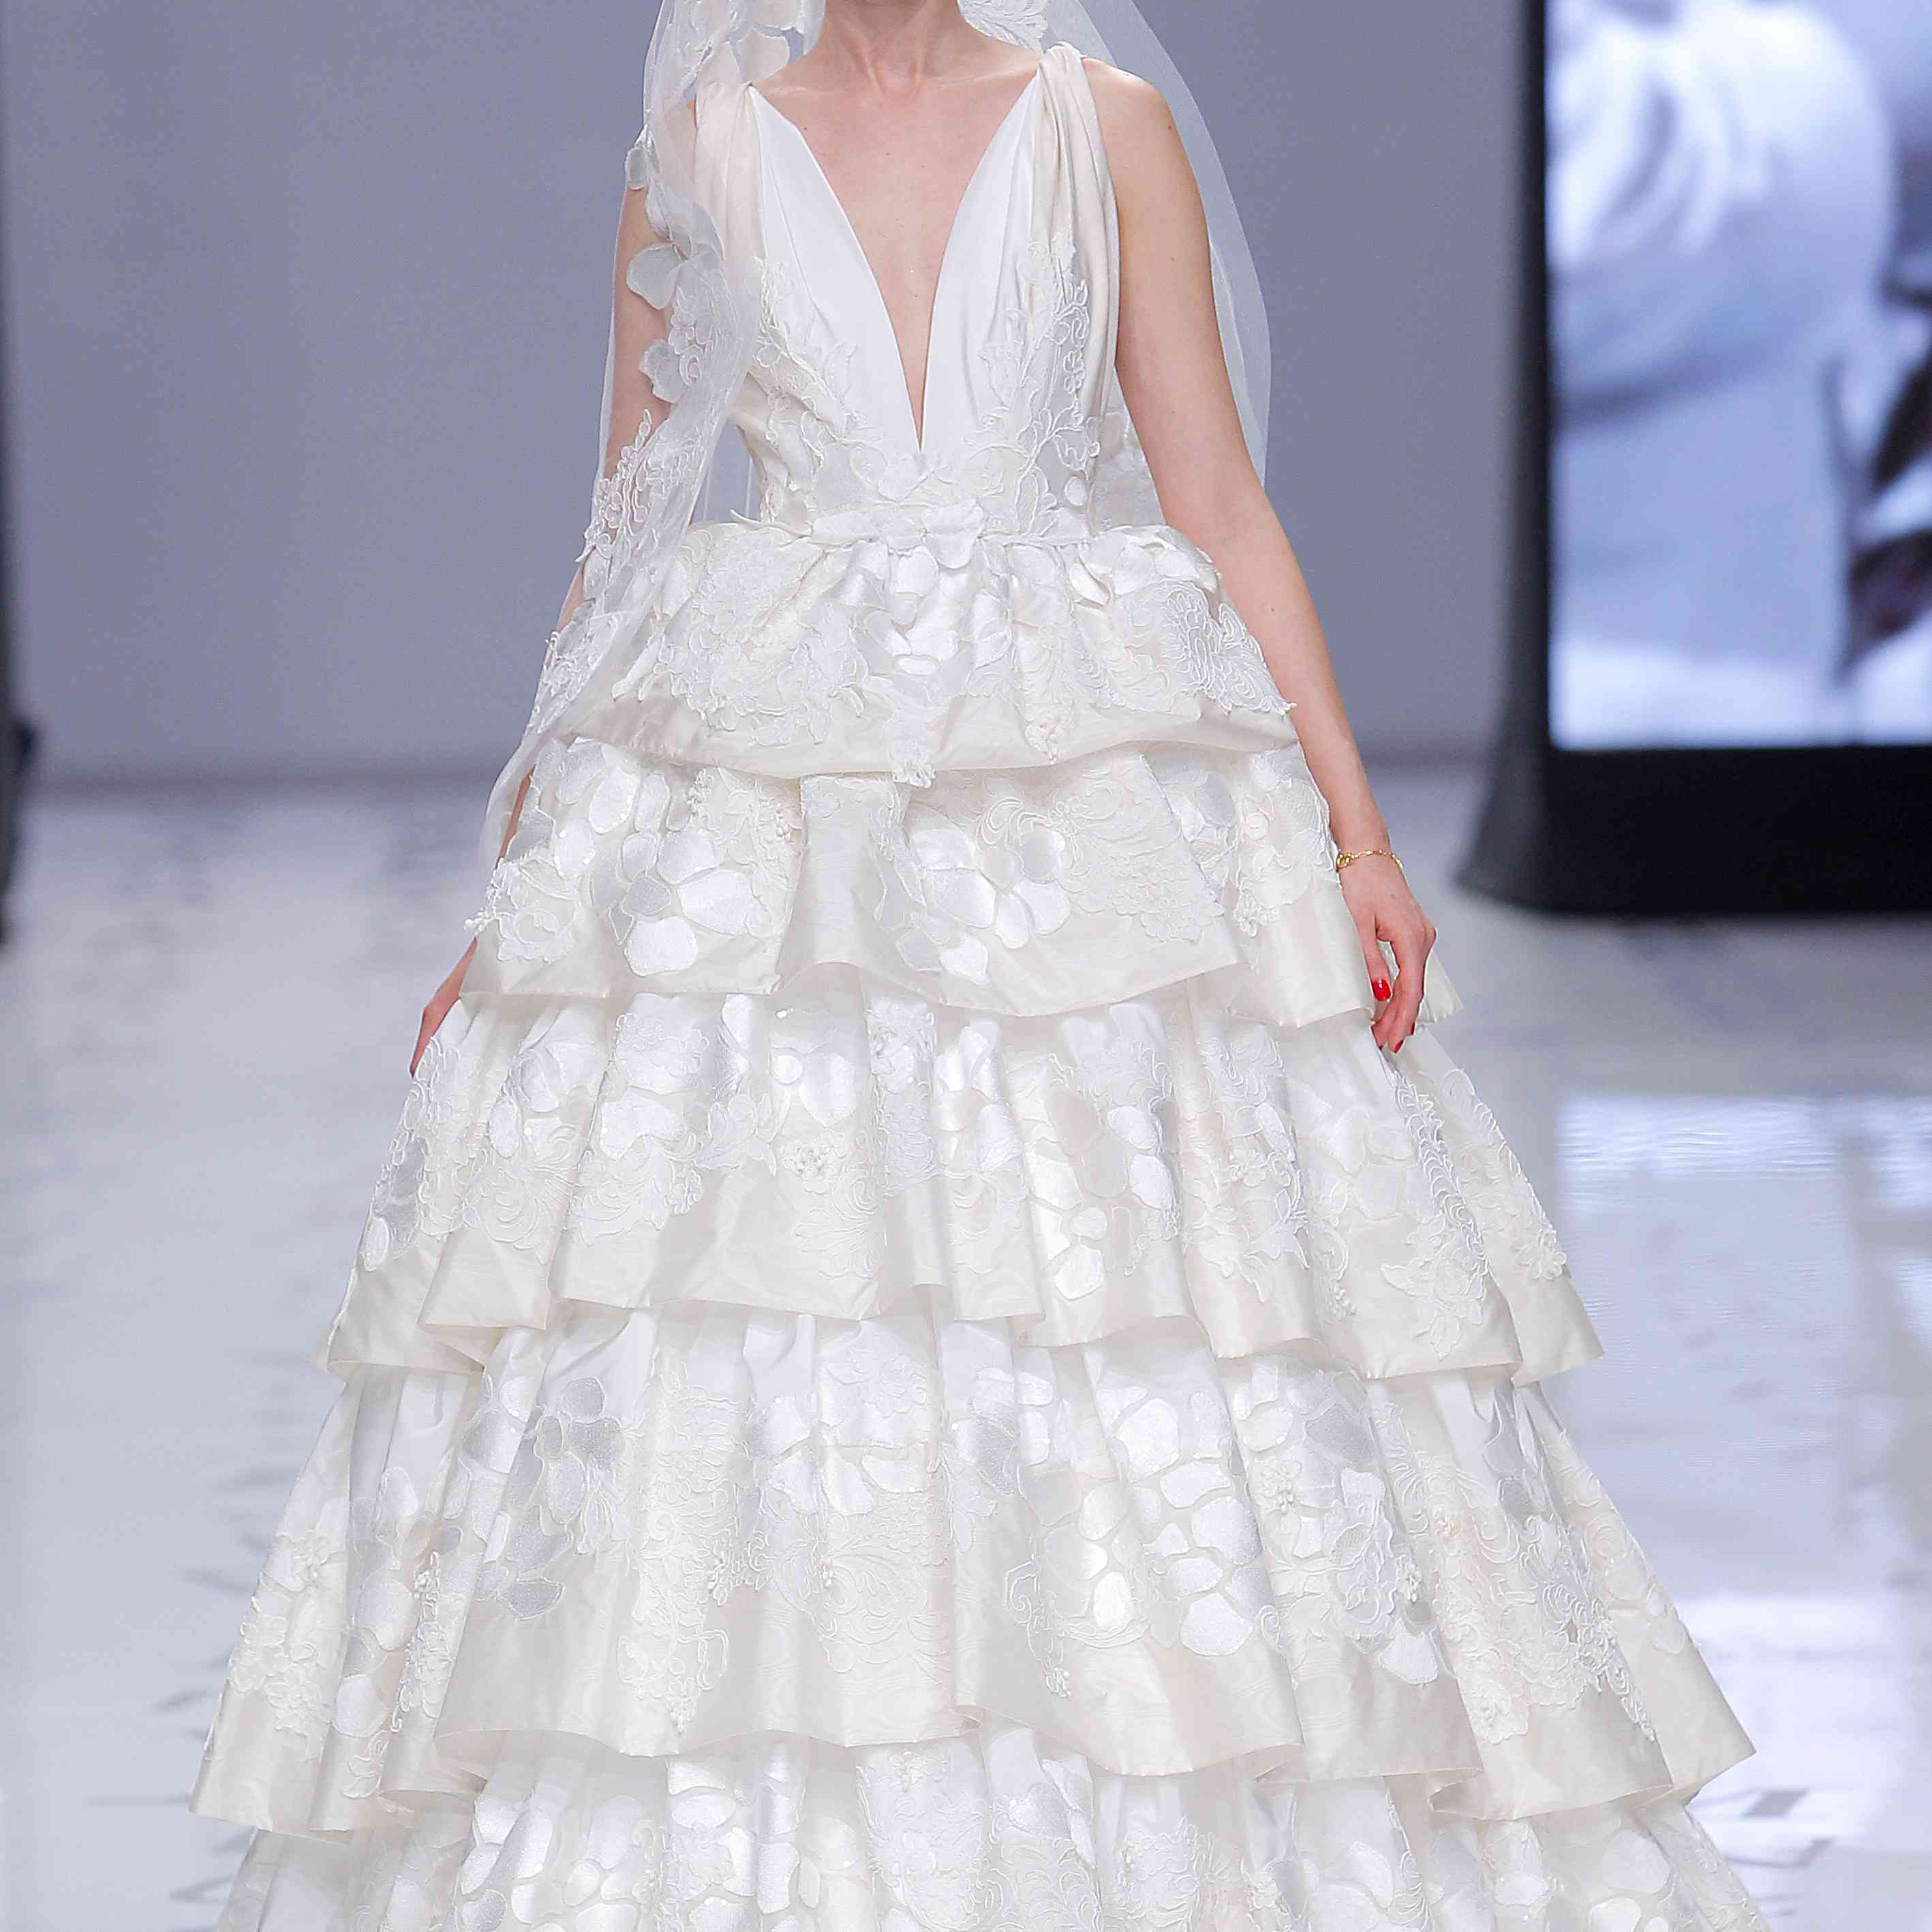 Model in a voluminous princess dress with a moiré skirt that features flower motifs and layers of ruffles and a deep V-neck bodice draped on the shoulders and decorated with embroidered lace